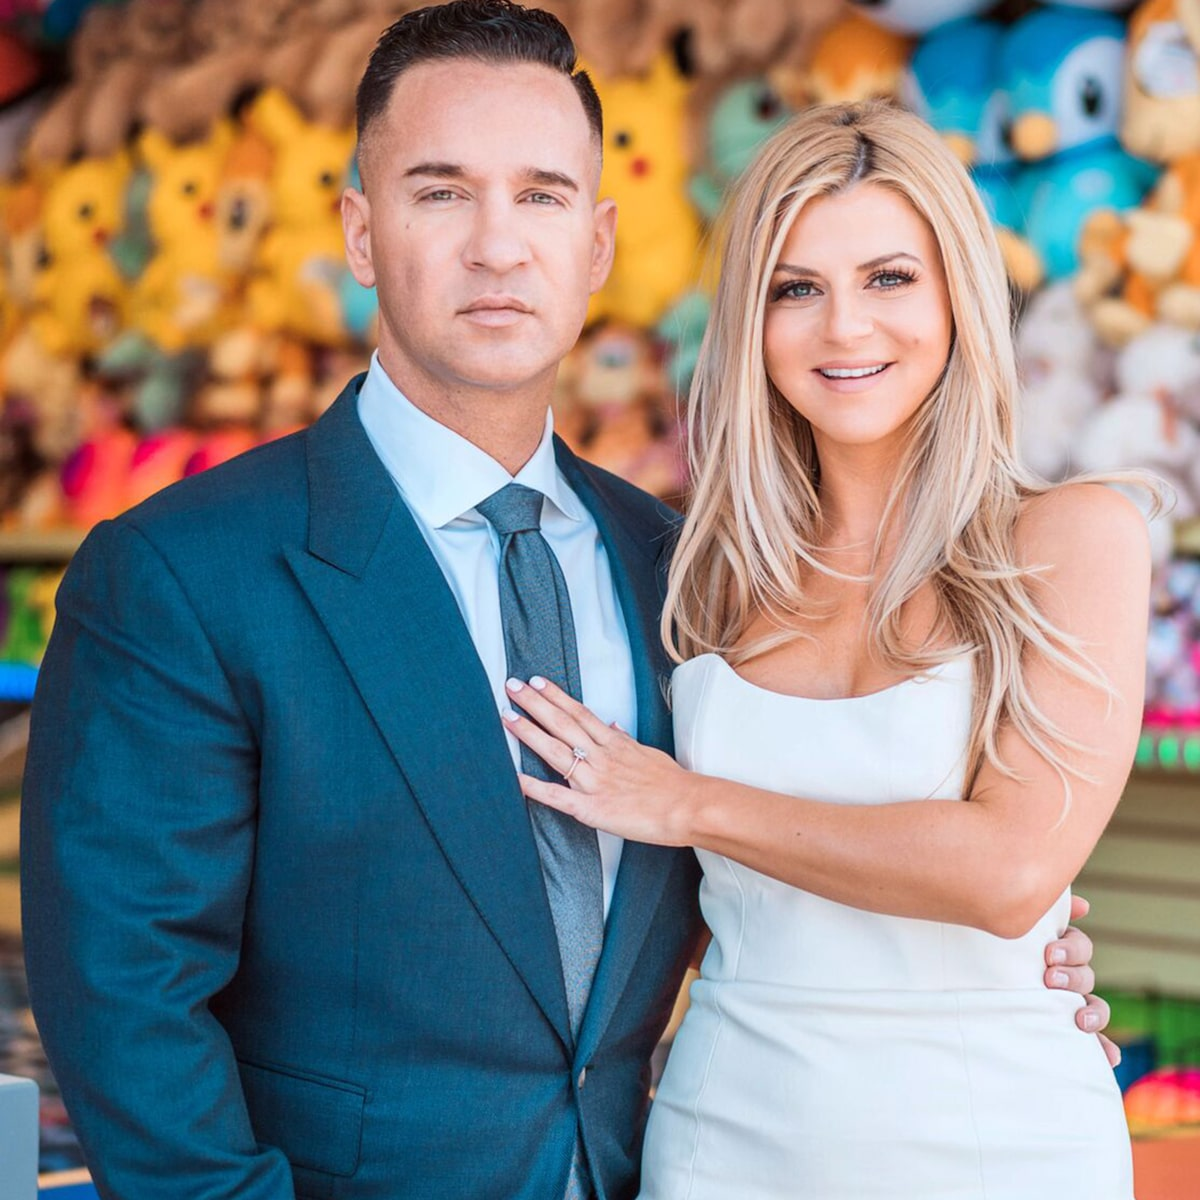 mike-the-situation-sorrentino-and-his-wife-lauren-pesce-are-officially-parents-see-the-first-pics-of-their-baby